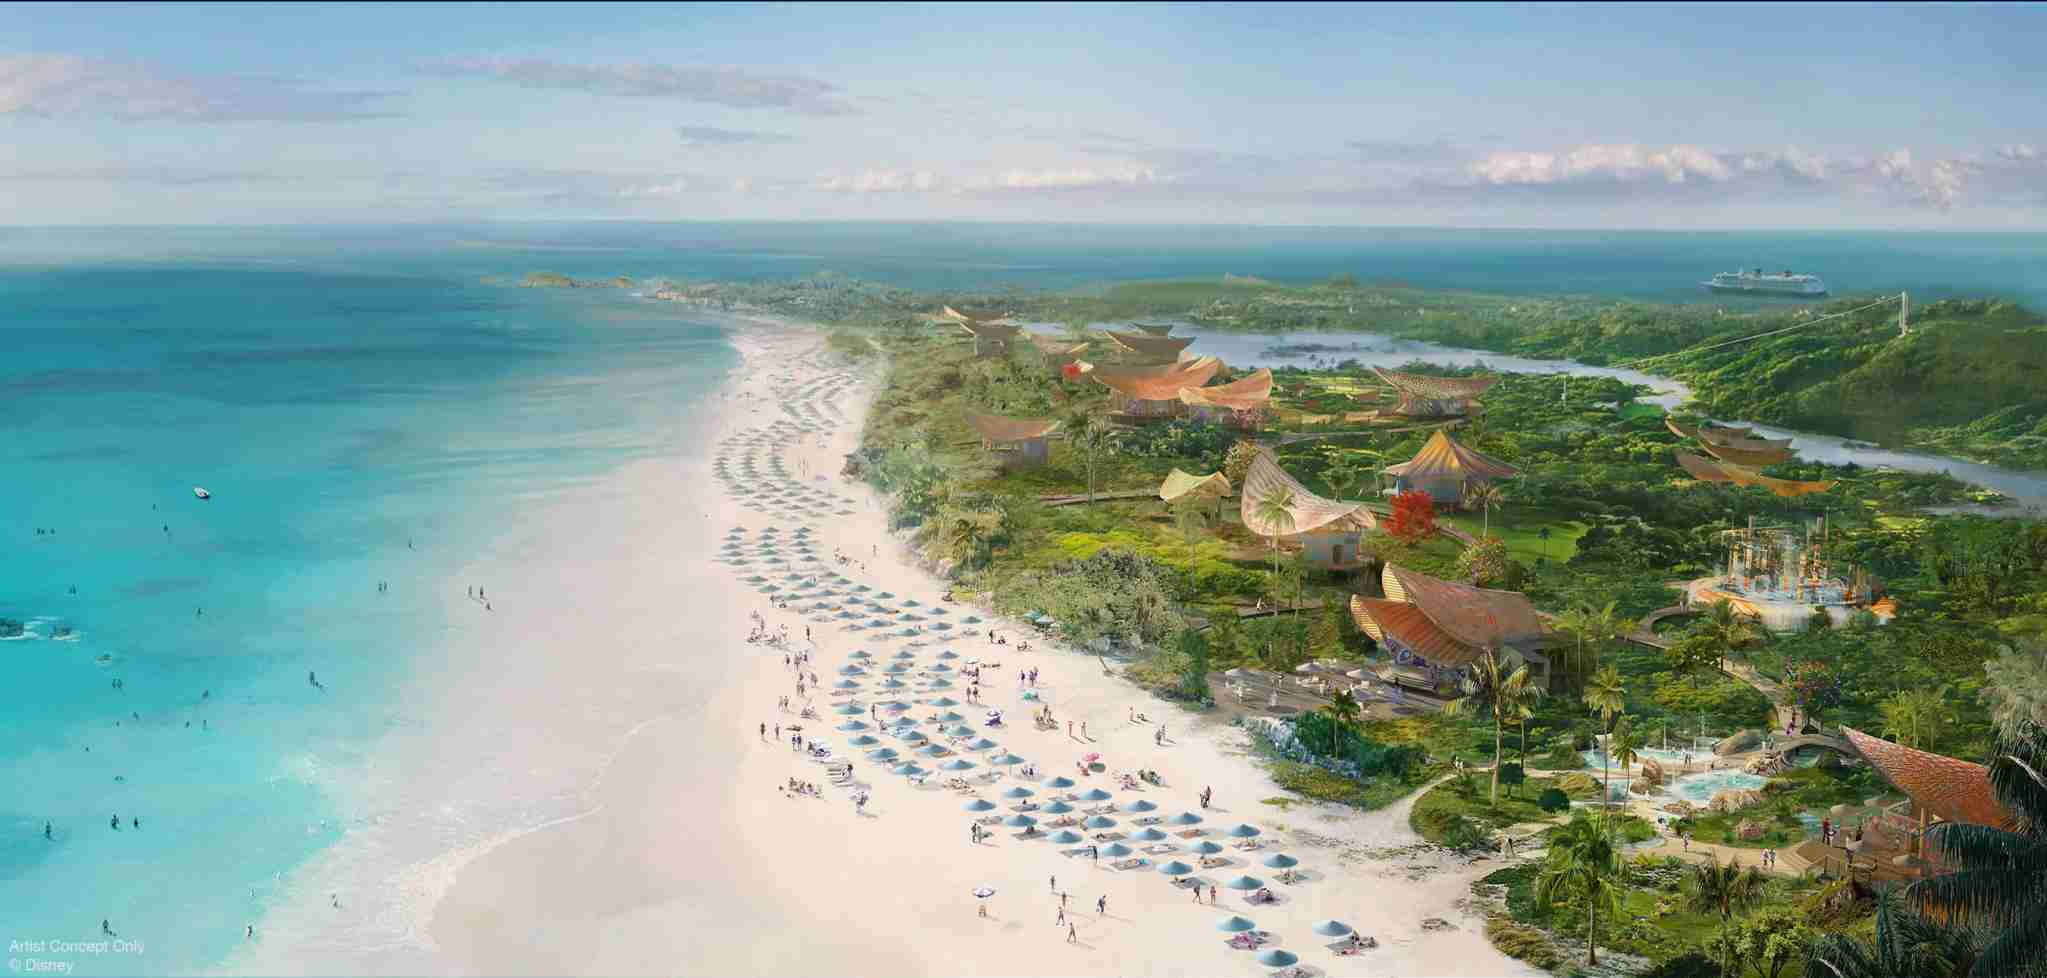 Disney is building a new signature island experience on Eleuthera at a place called Lighthouse Point. (Photo courtesy of Disney Cruise Line)